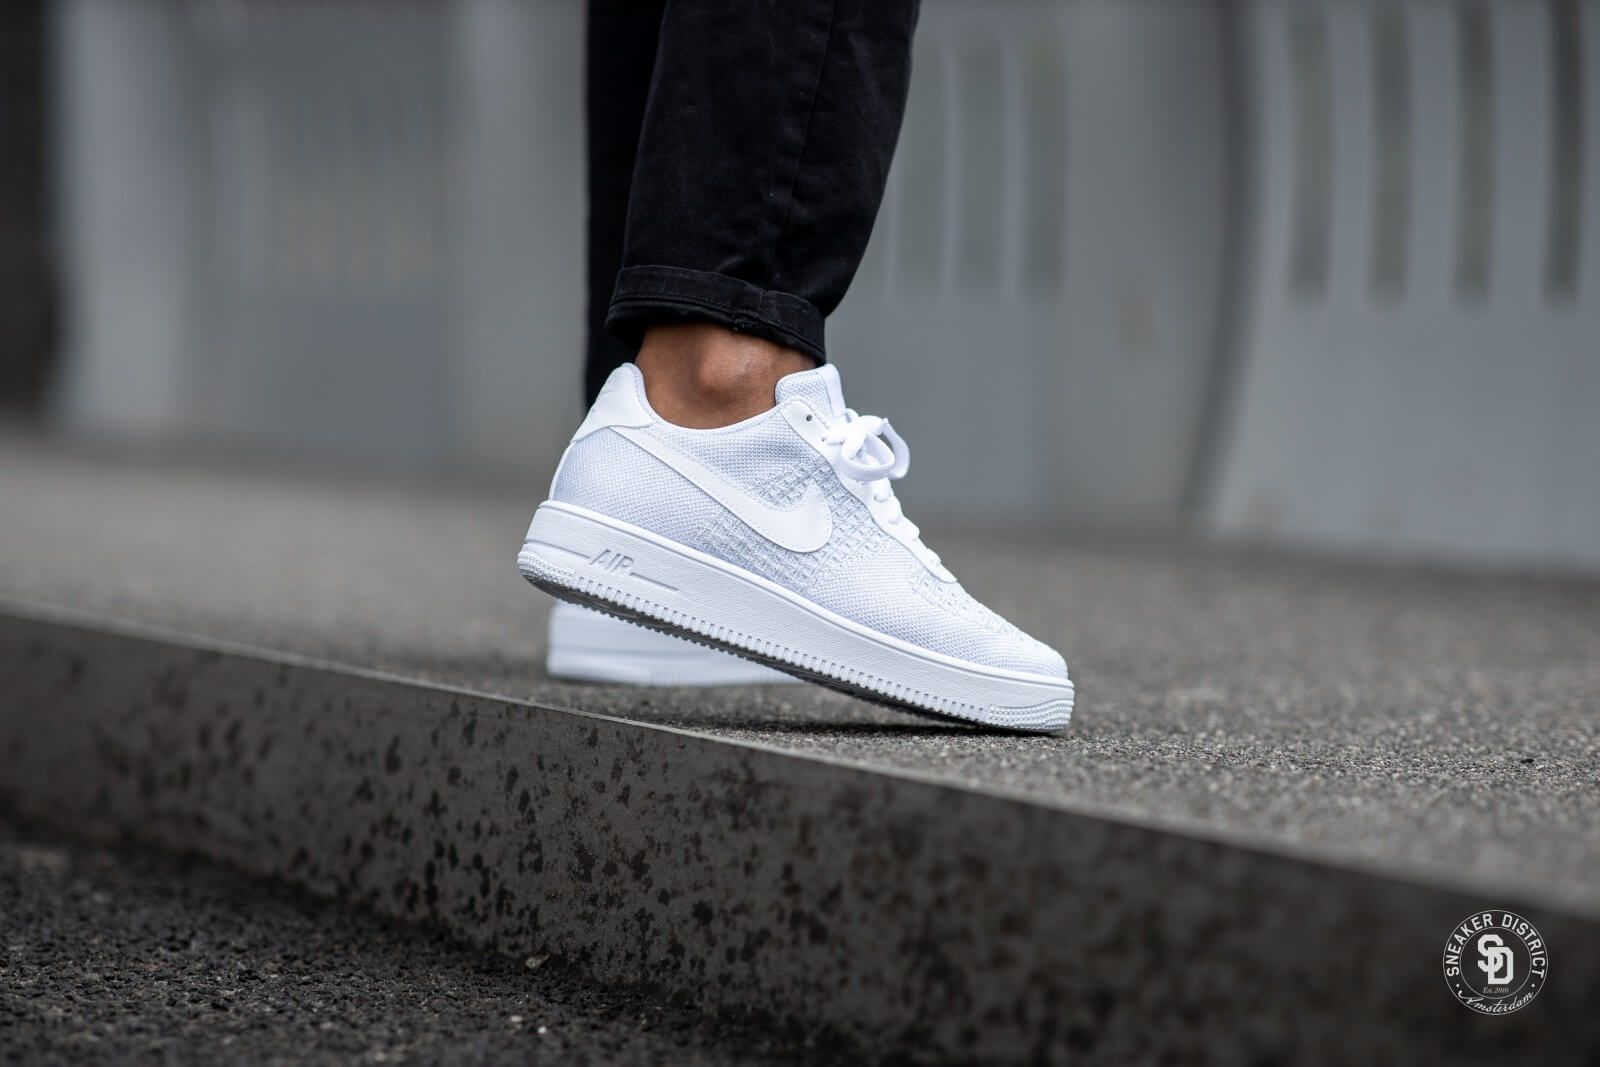 Nike Air Force 1 Flyknit 2.0 WhitePure Platinum AV3042